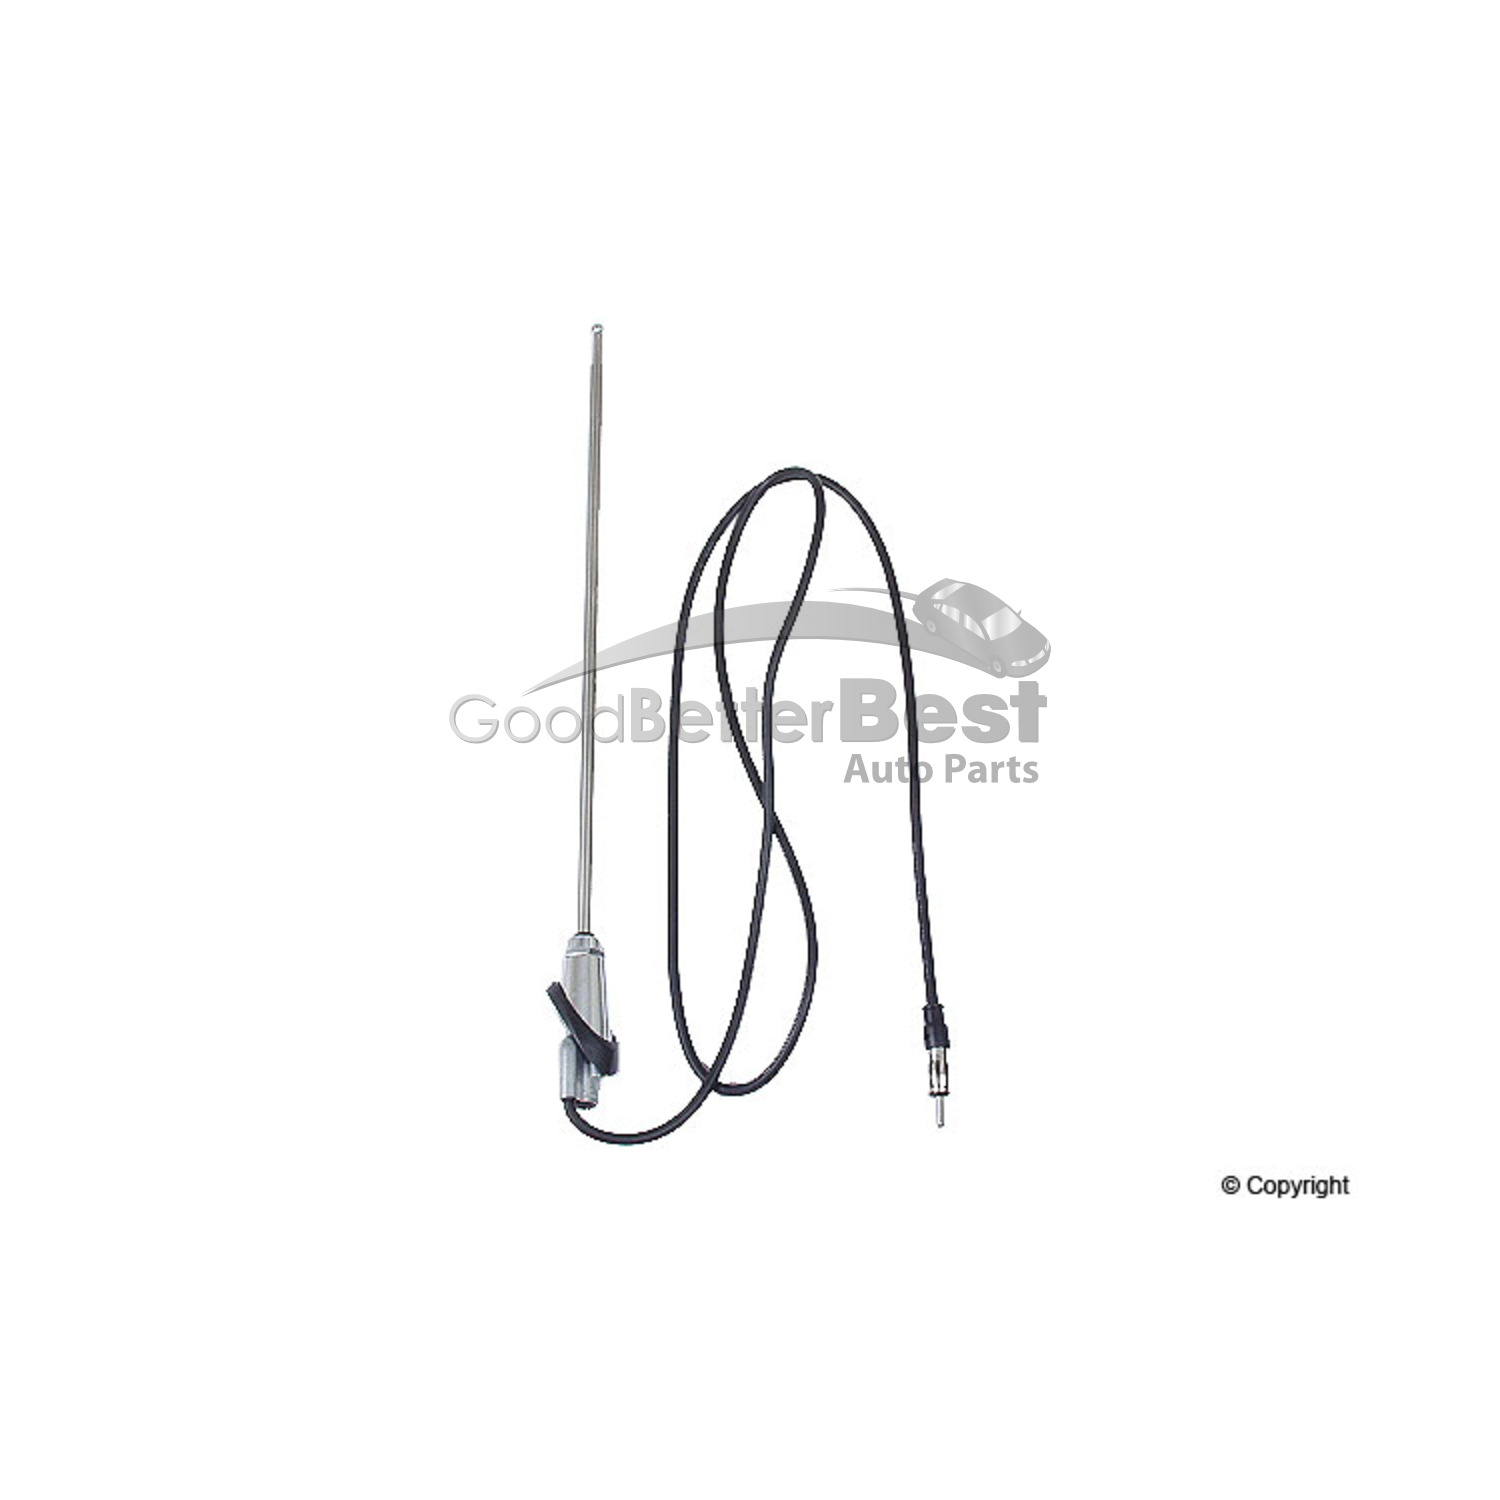 One New Antenna VW6101000 for Volkswagen VW Beetle Super